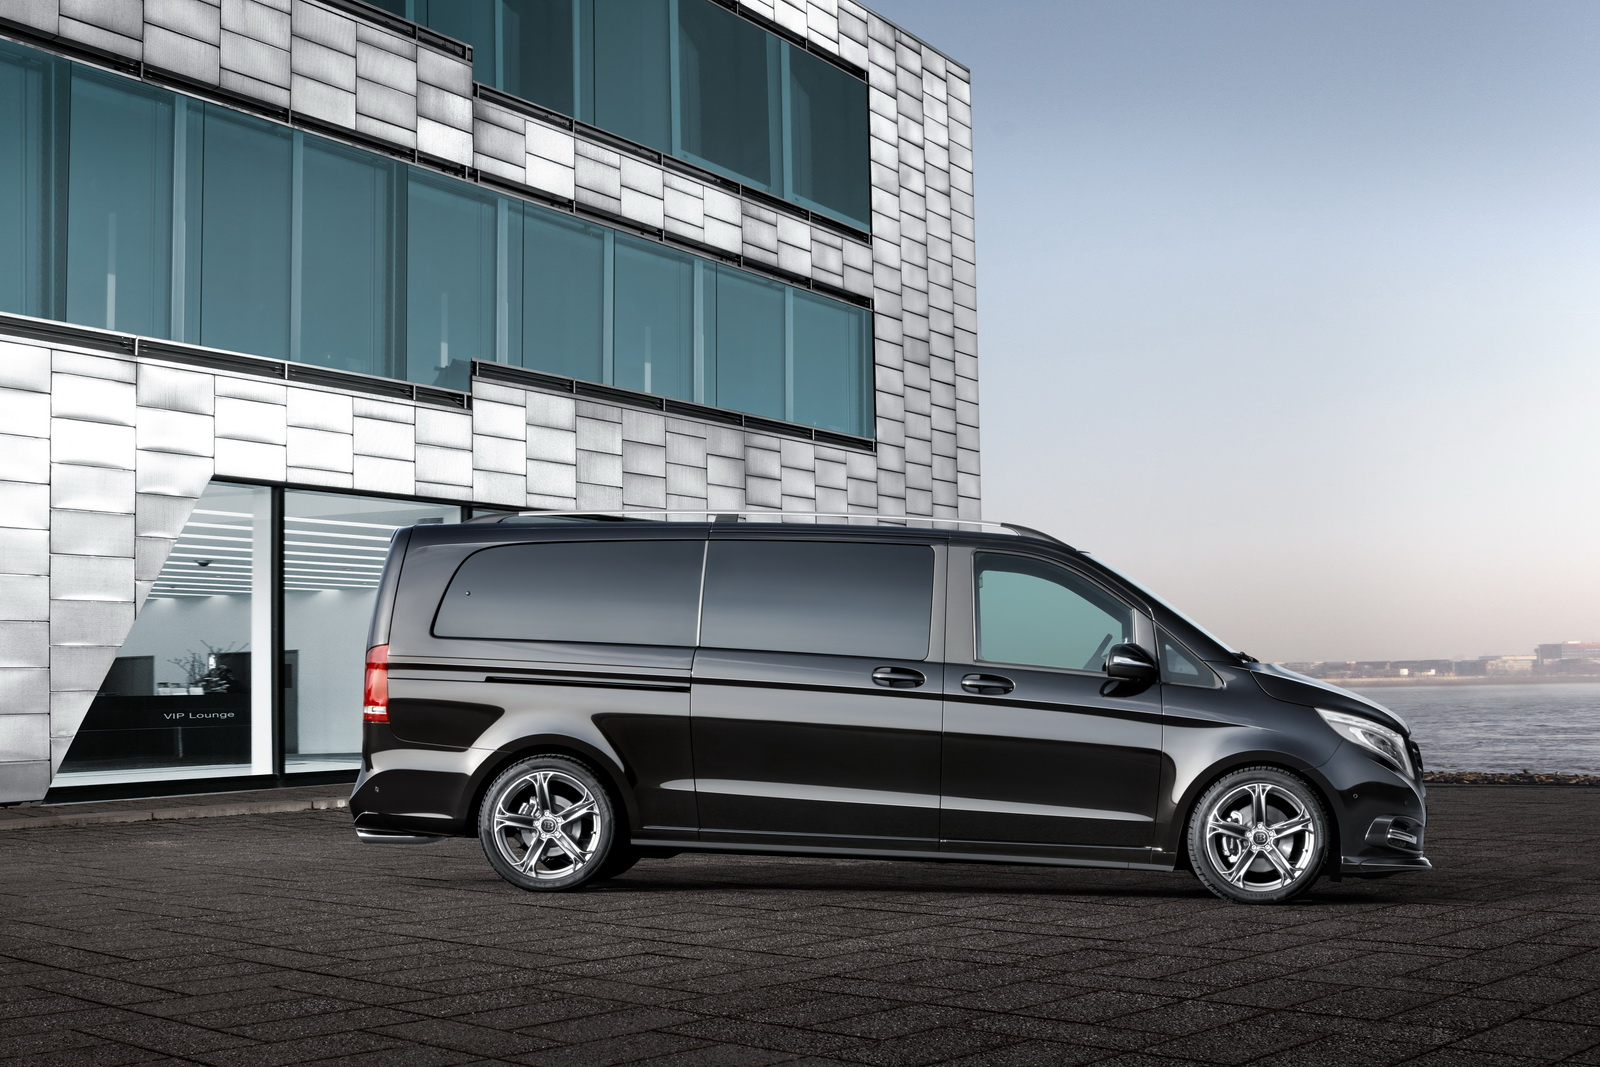 brabus turns the mercedes v class into a rolling business lounge carscoops. Black Bedroom Furniture Sets. Home Design Ideas